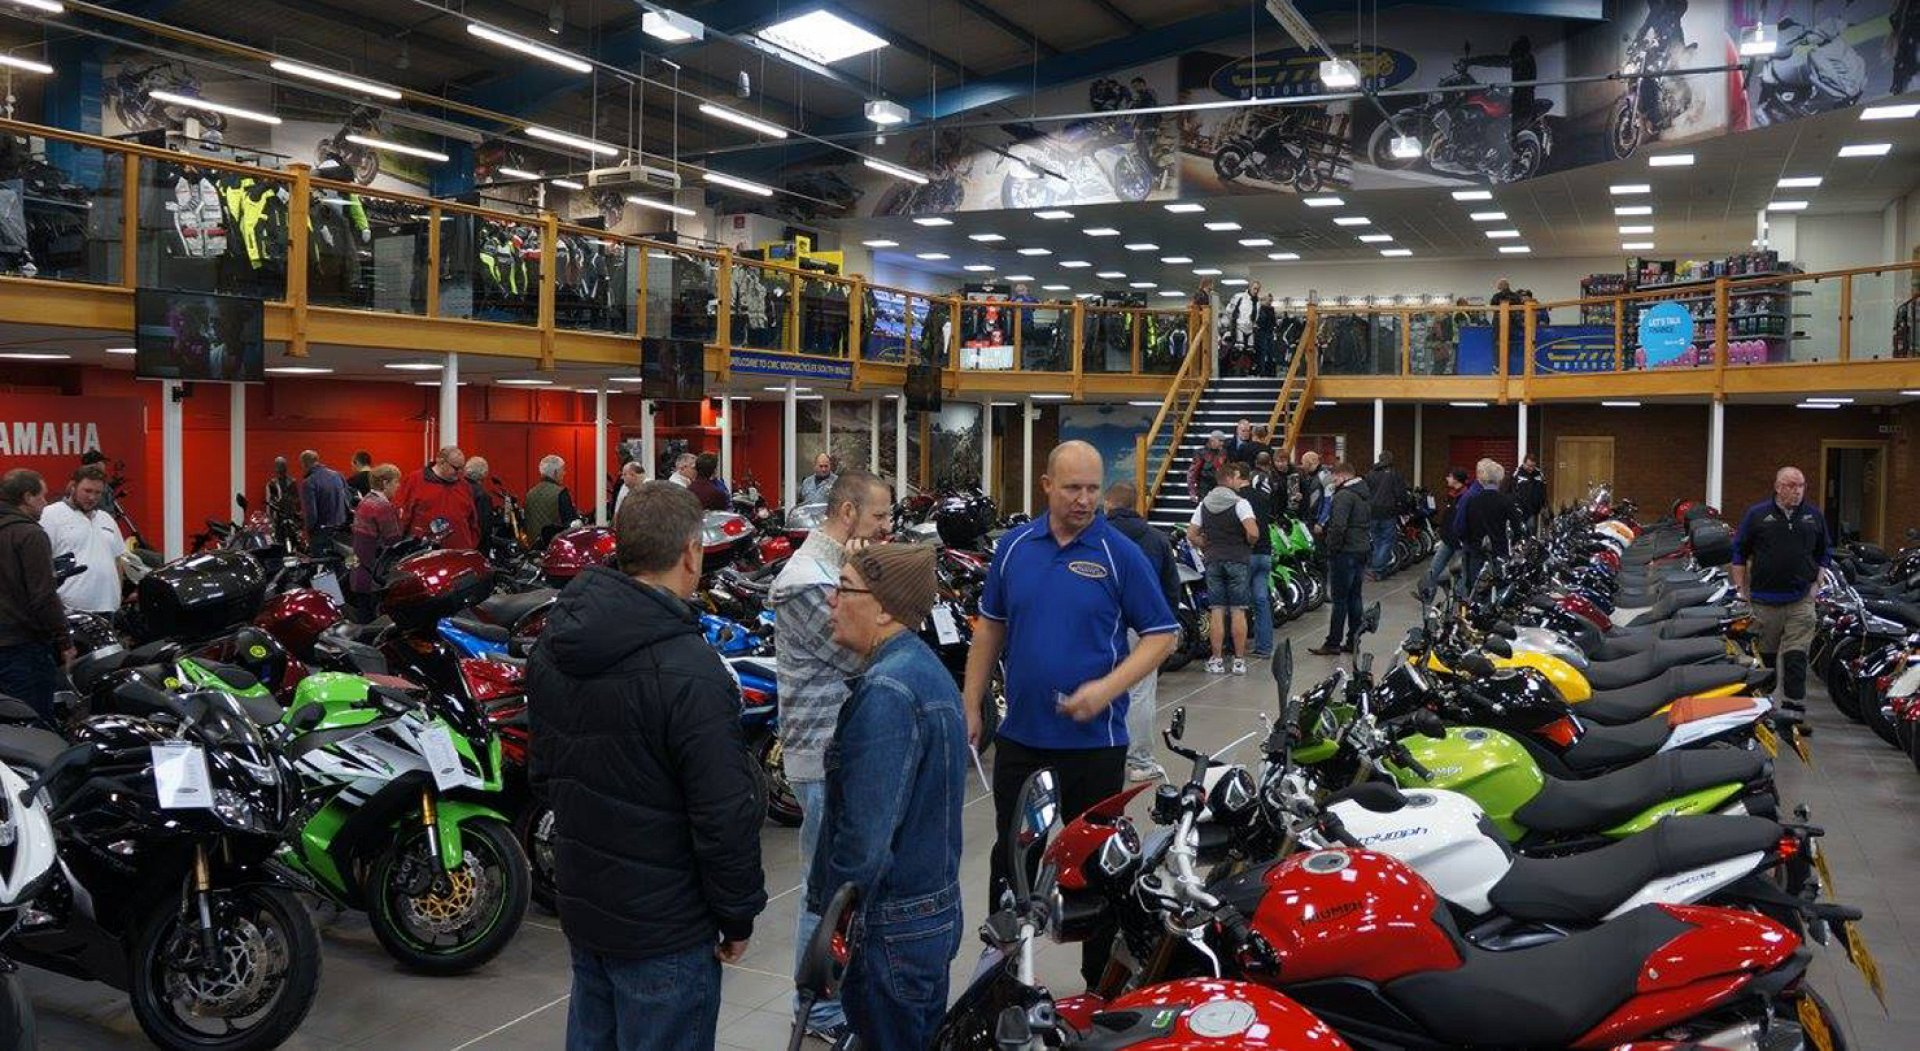 South Wales Superbikes >> Motorcycle Dealer Used And New Bikes For Sale Clothing